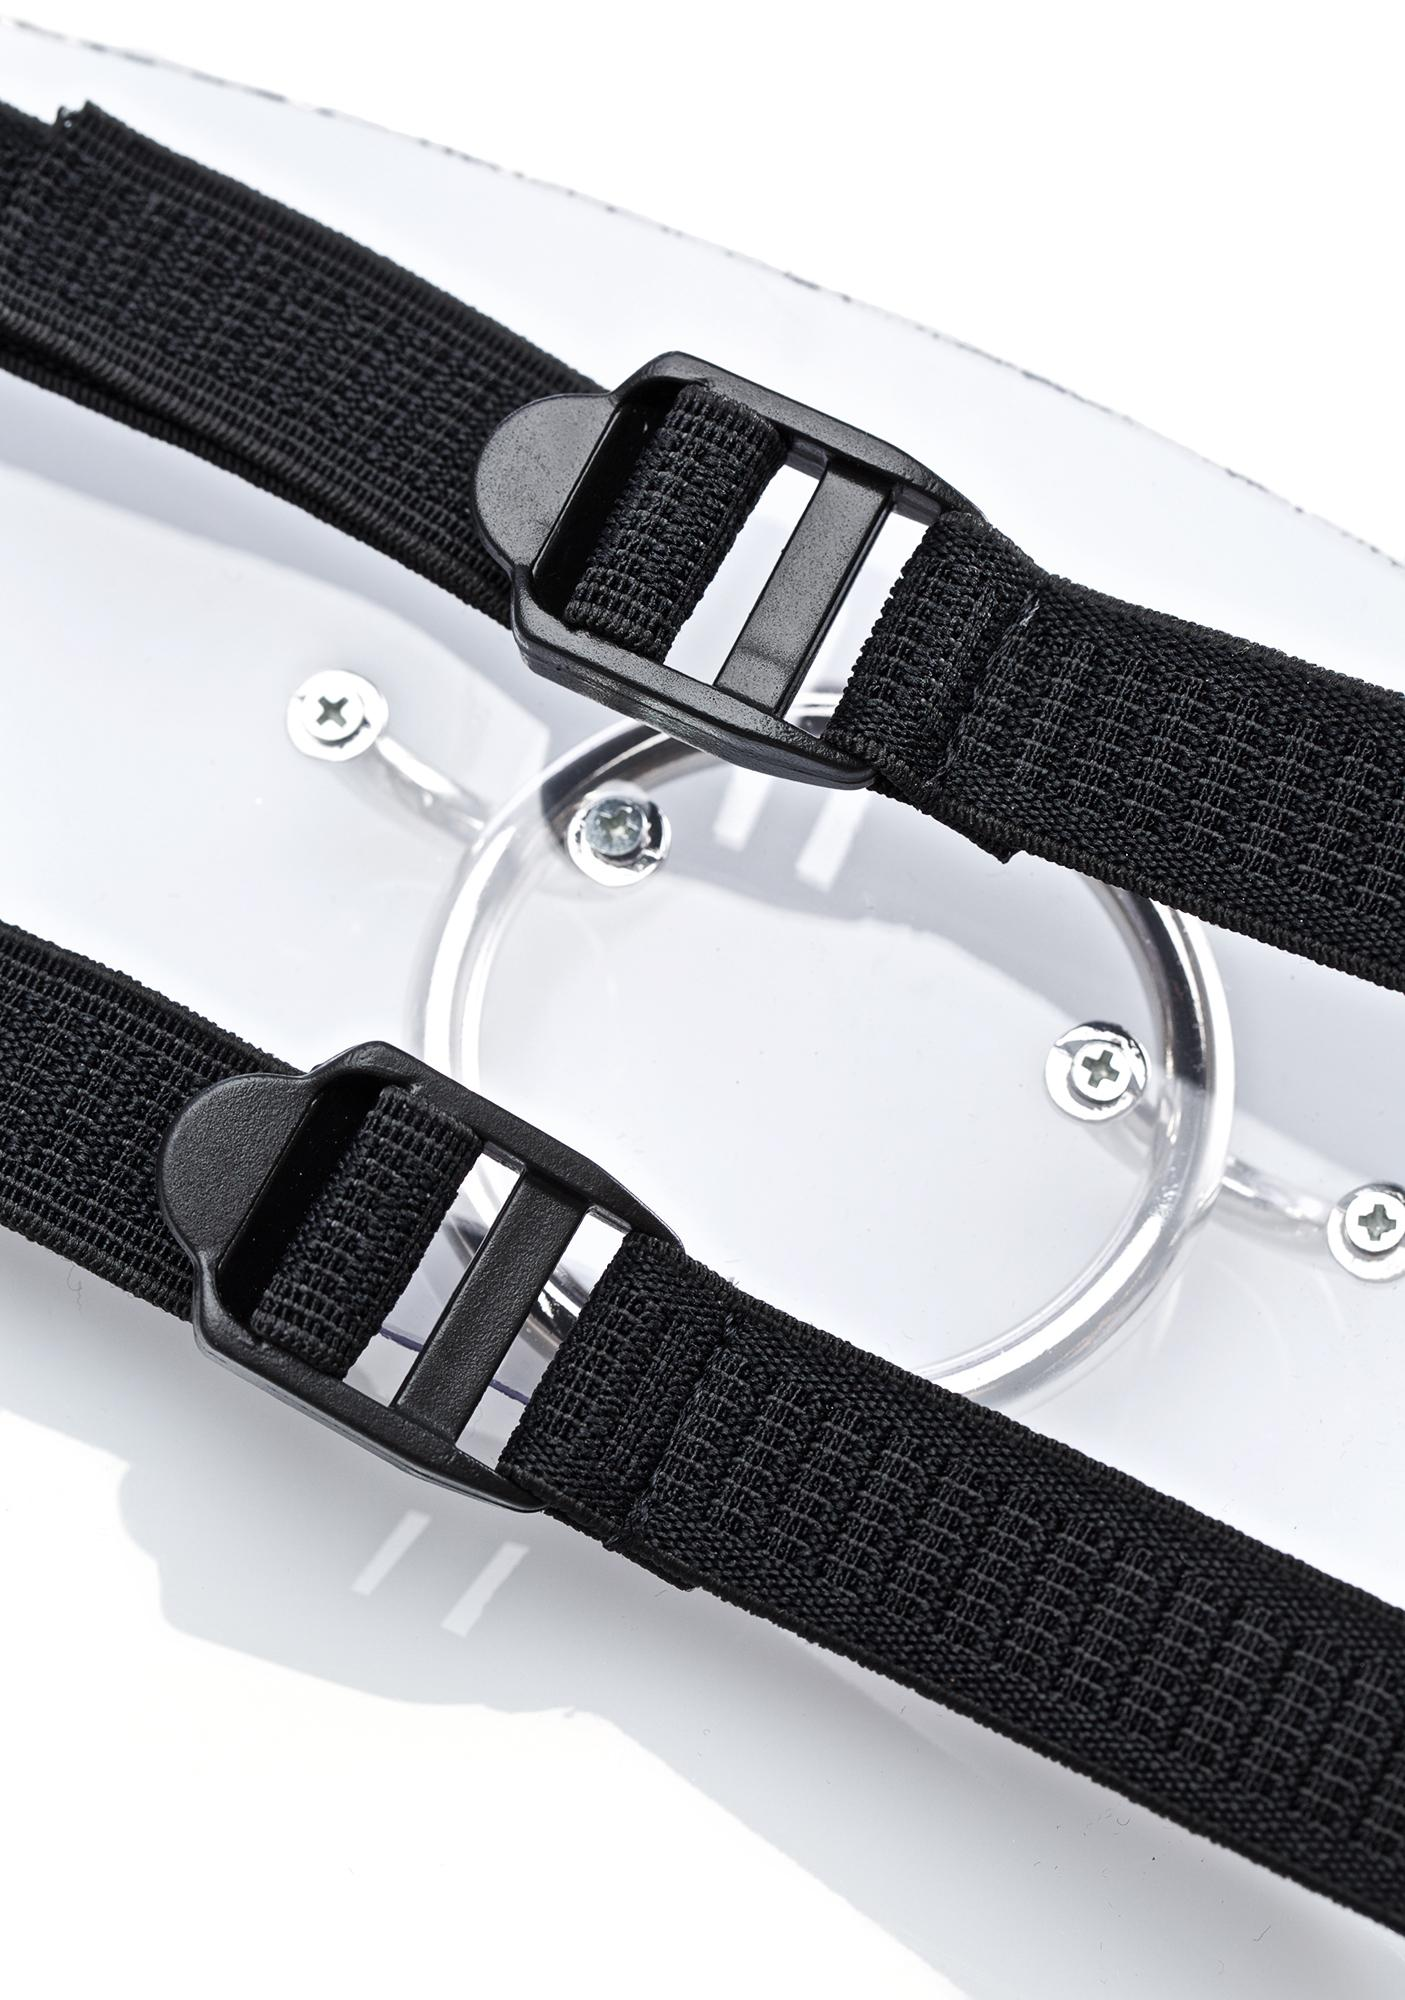 Club Exx Clearly Crazy O-Ring Leg Harness